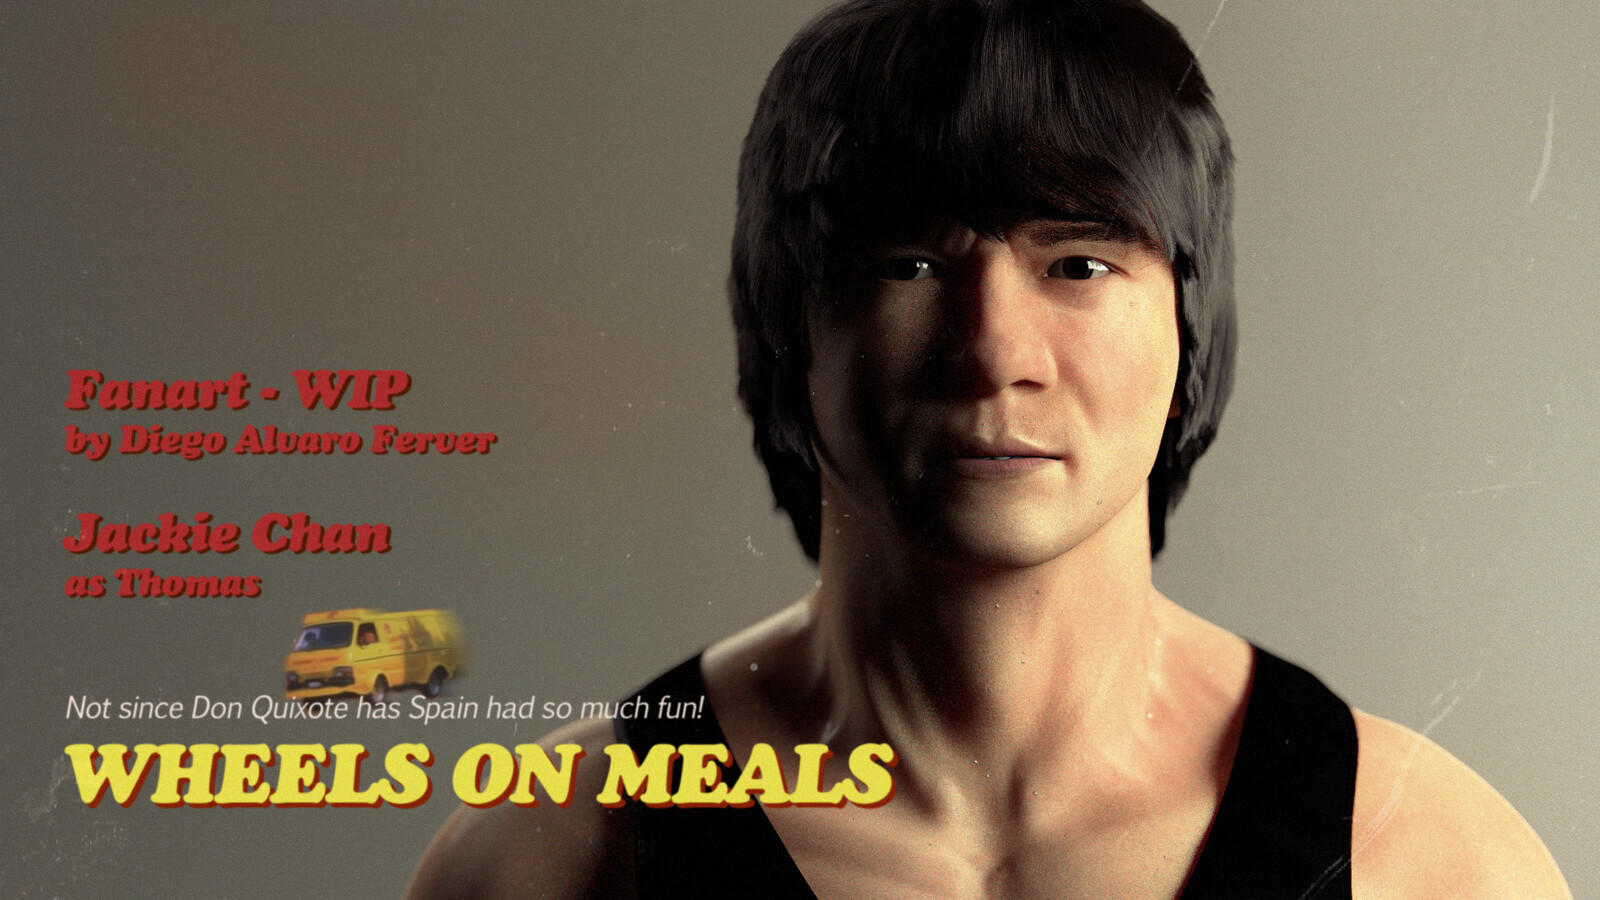 Jackie Chan - Wheels on Meals - 1984